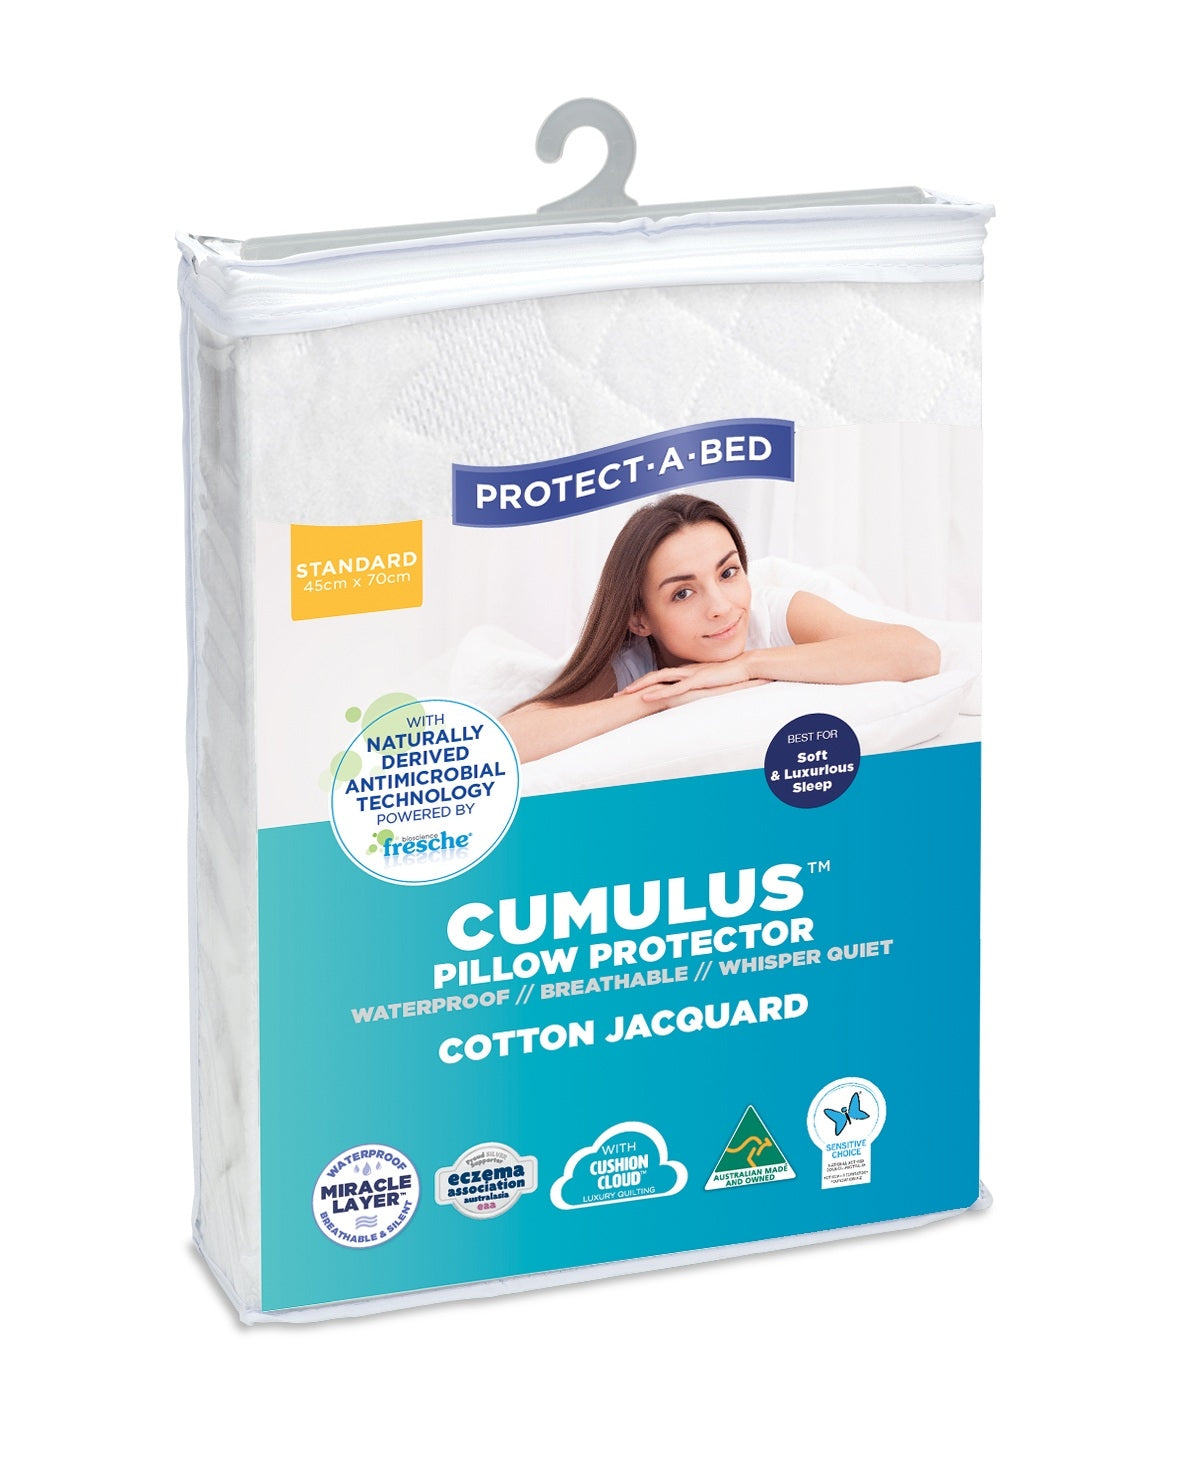 Protect-A-Bed Cumulus Pillow Protector